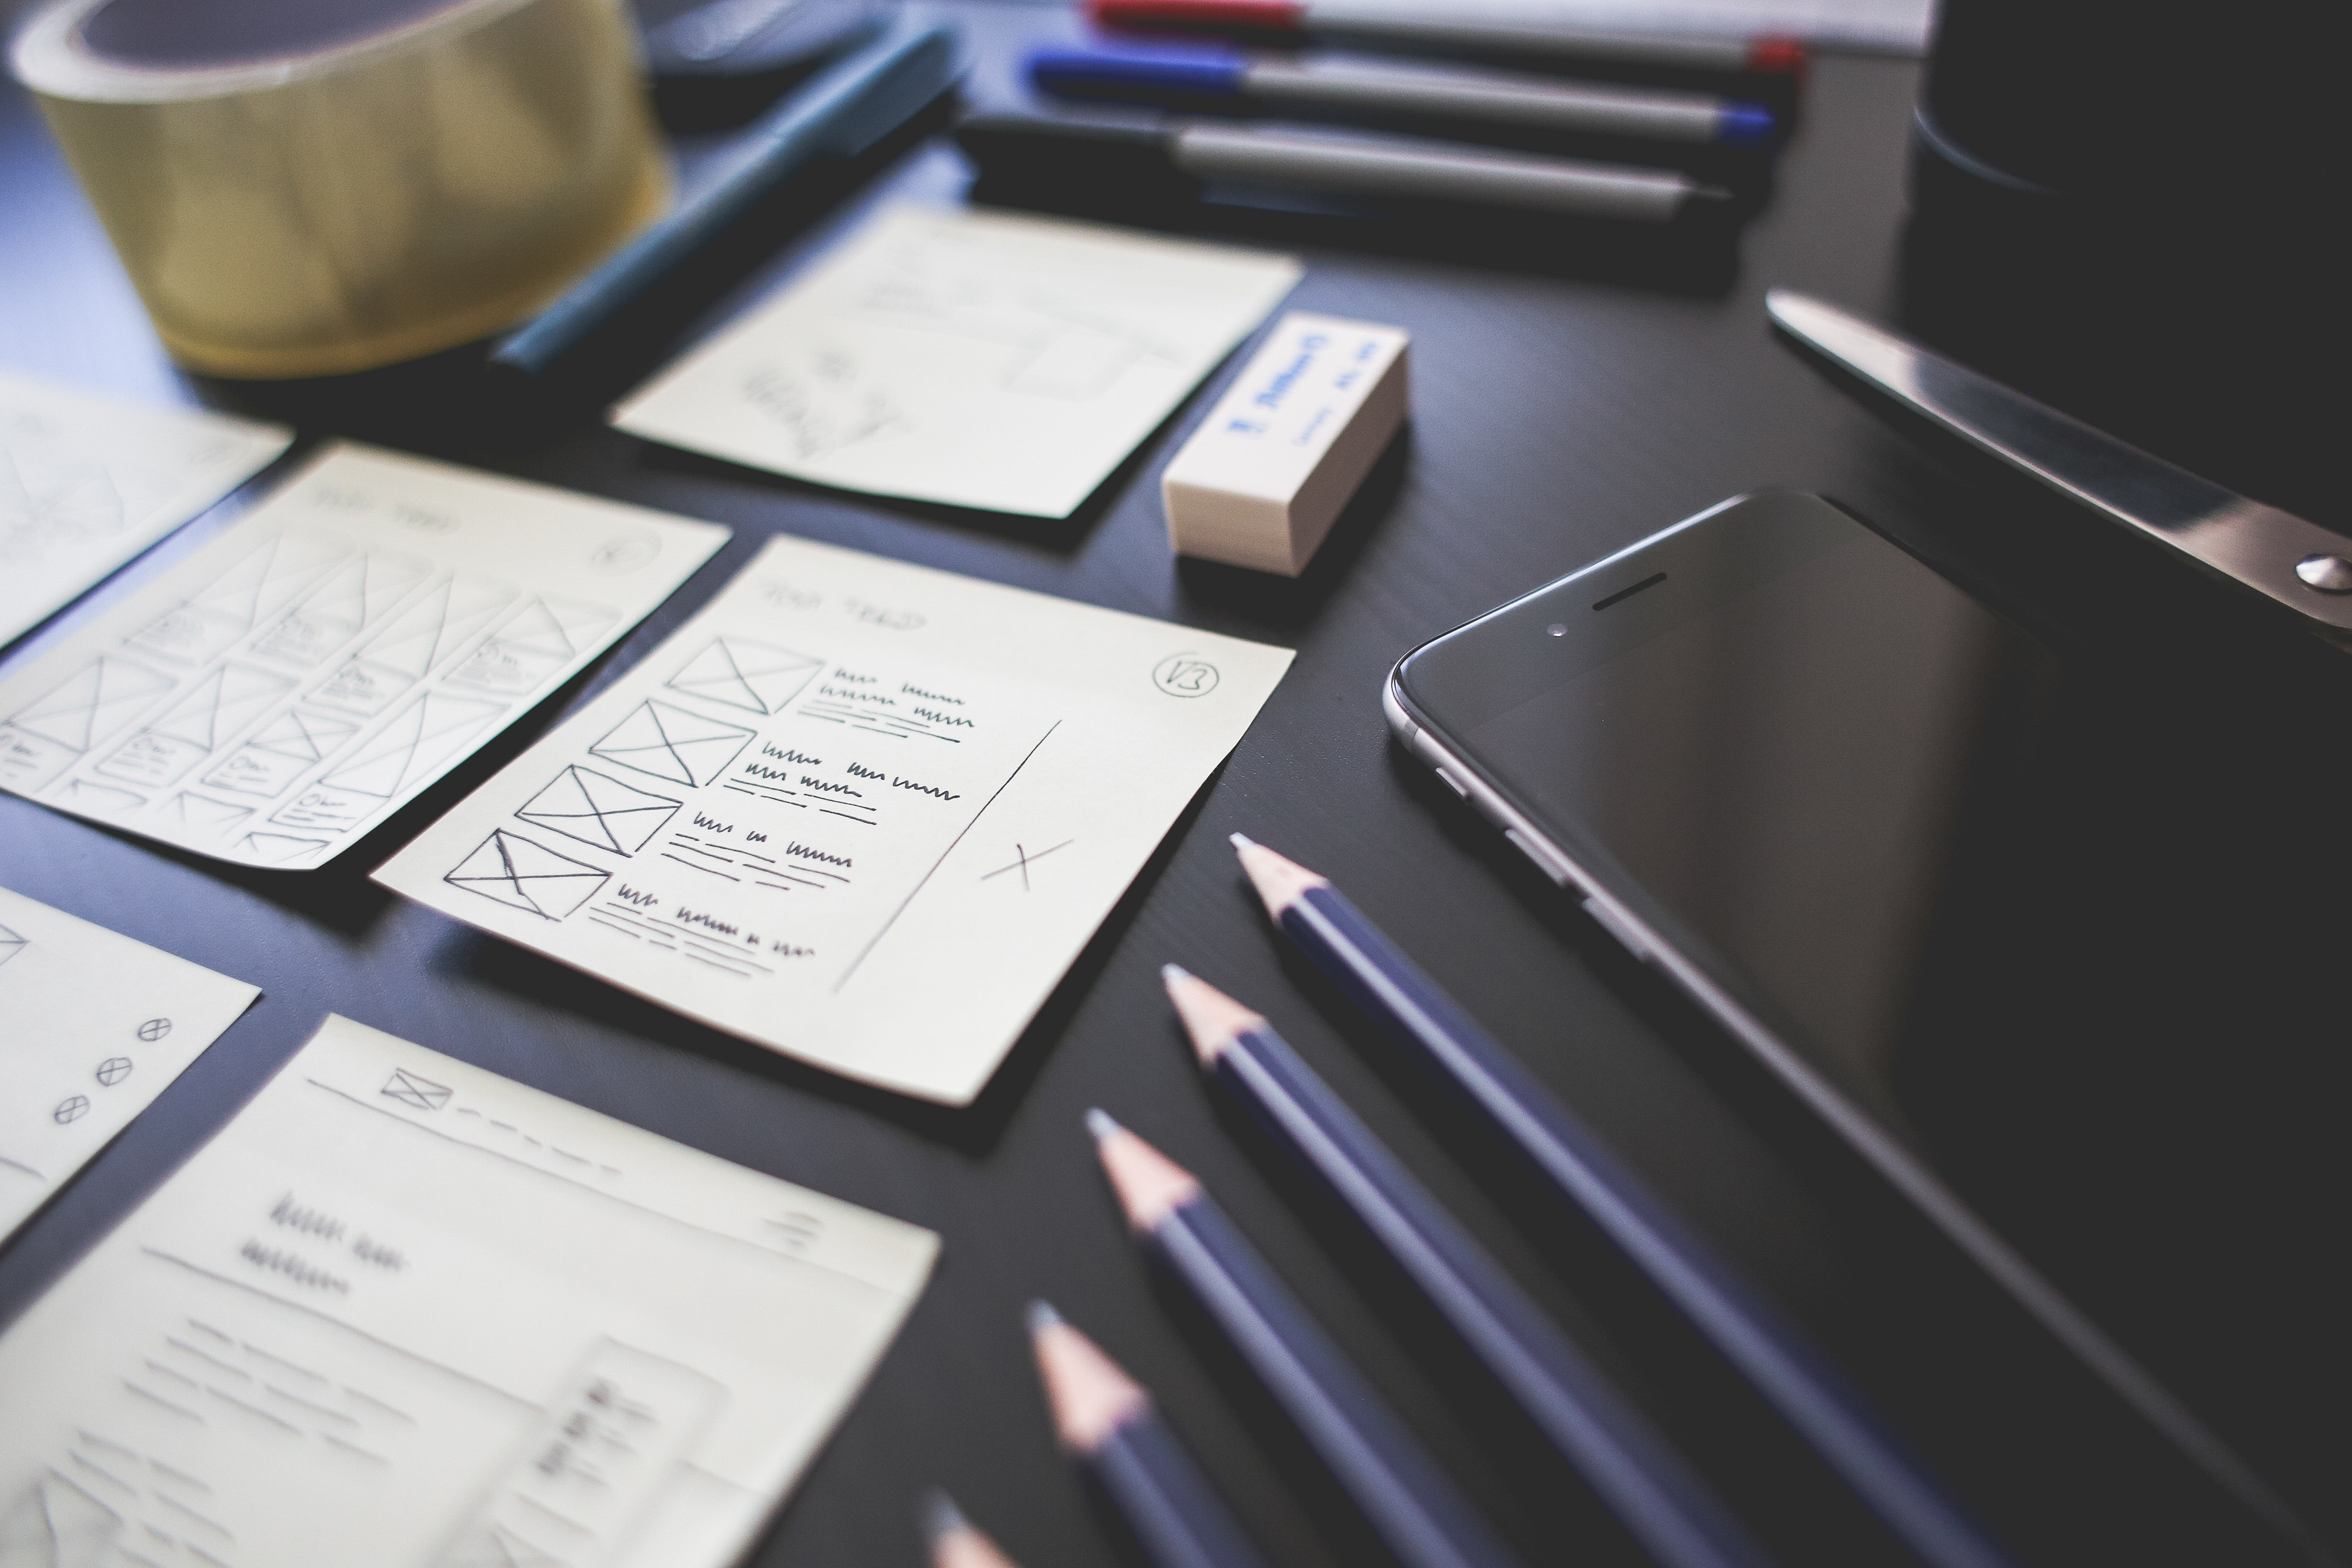 UX Design & Strategy